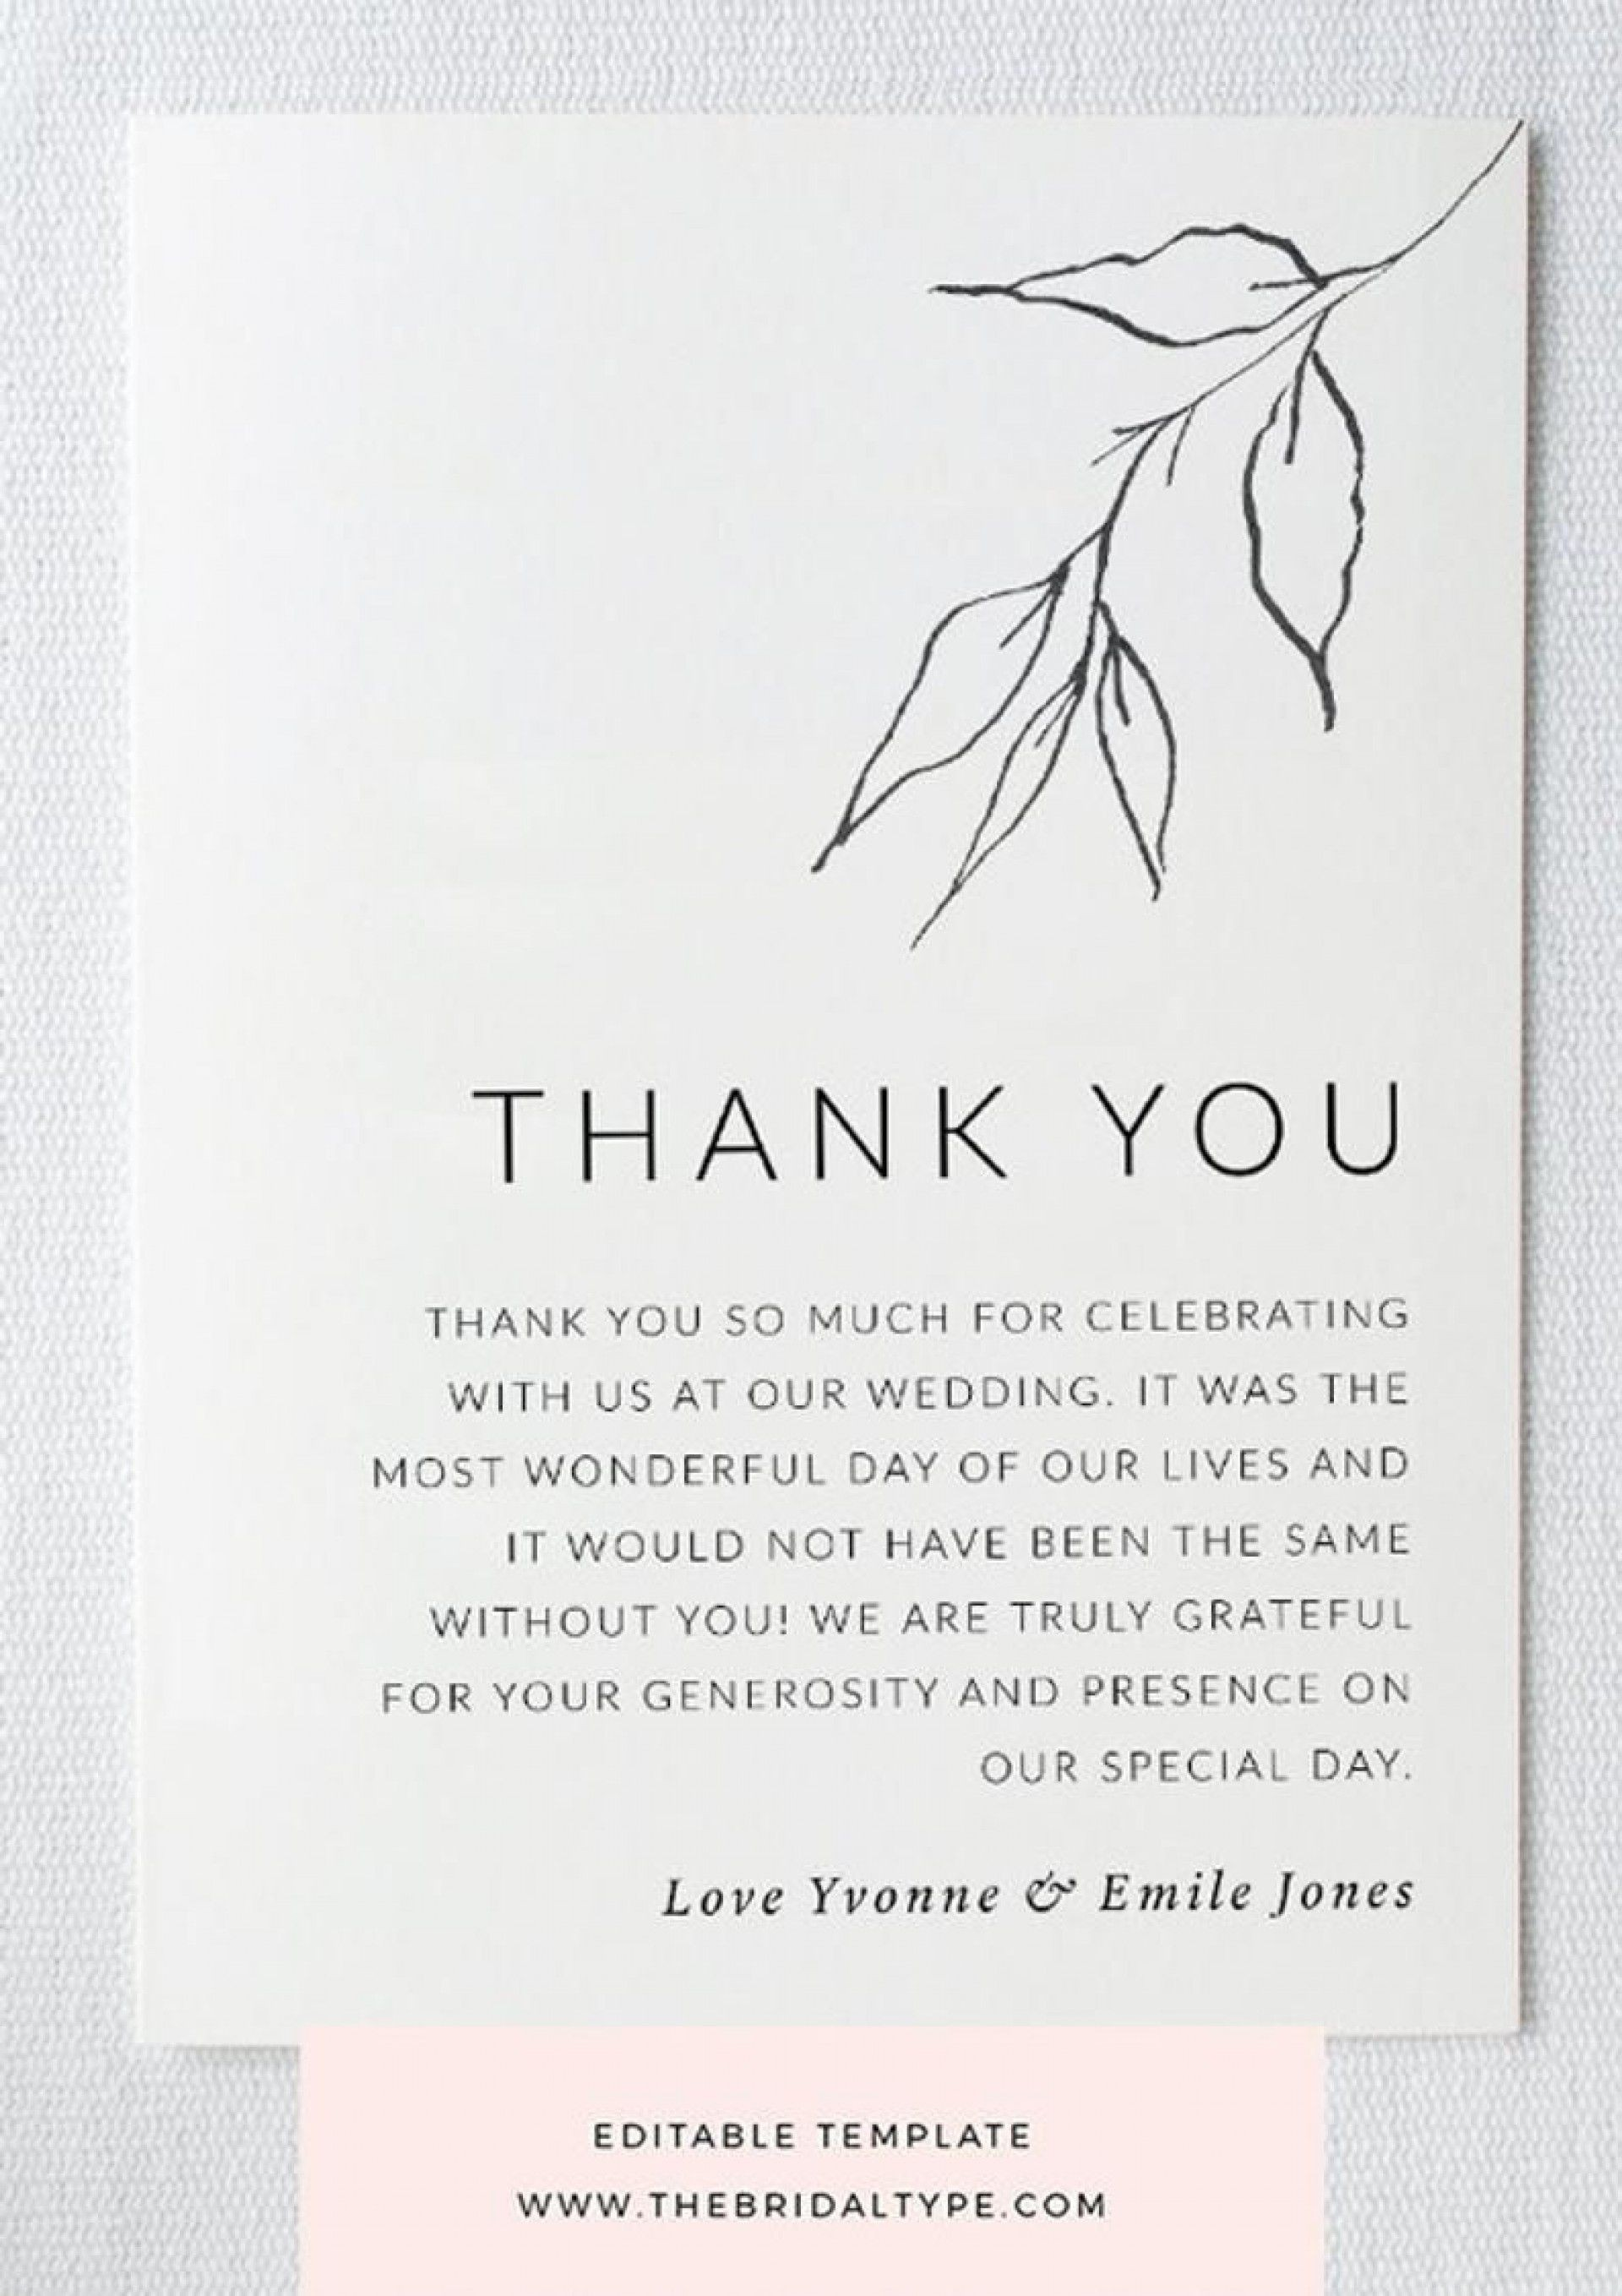 000 Frightening Thank You Note Template For Money Highest Quality  Card Wording Wedding Example Donation Graduation1920